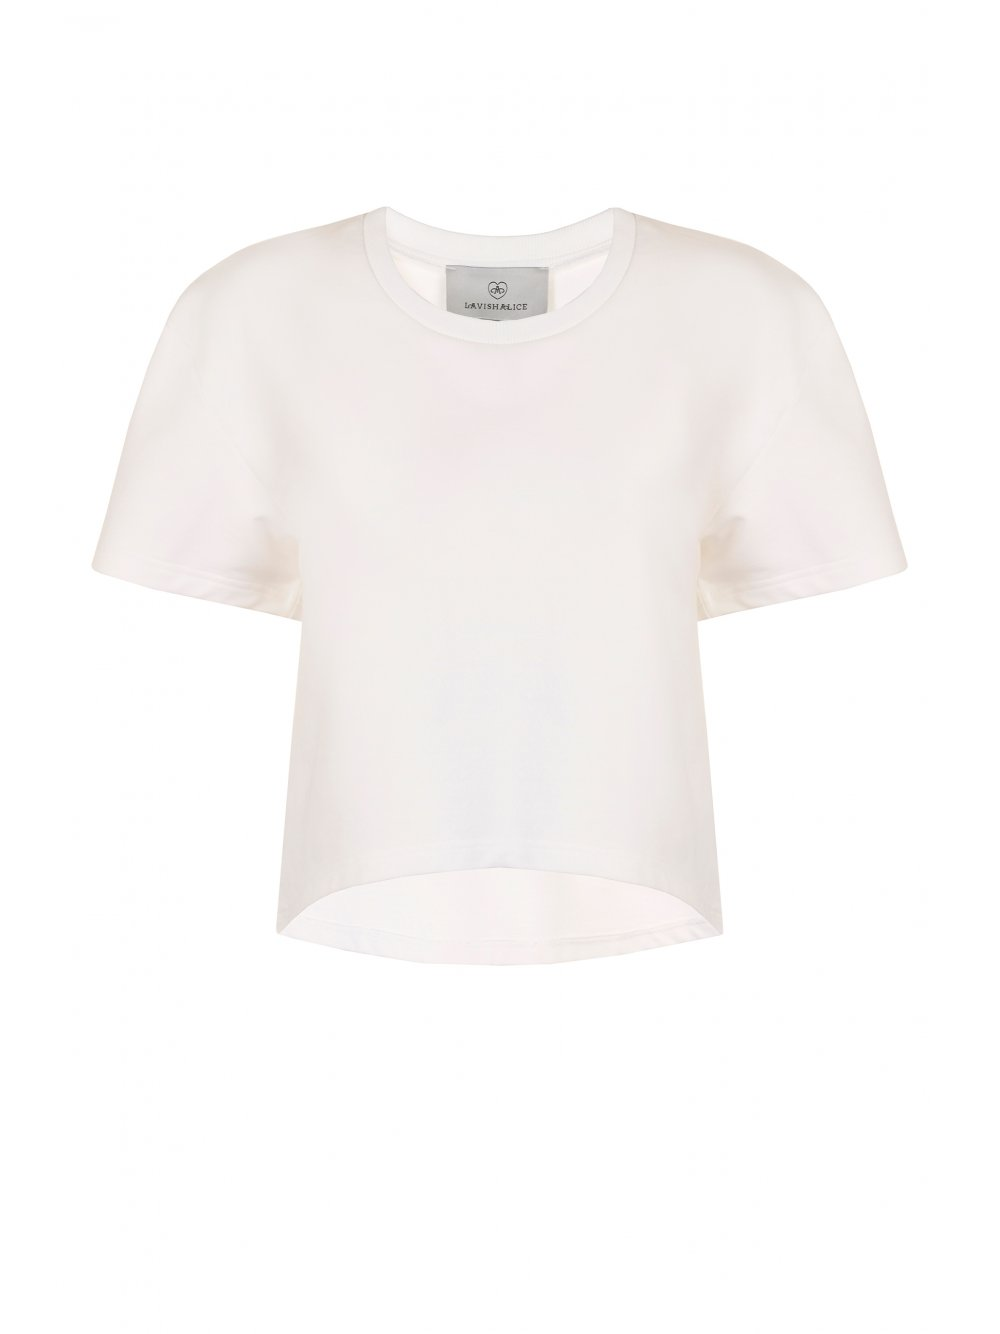 White jersey rib neck curved hem tee